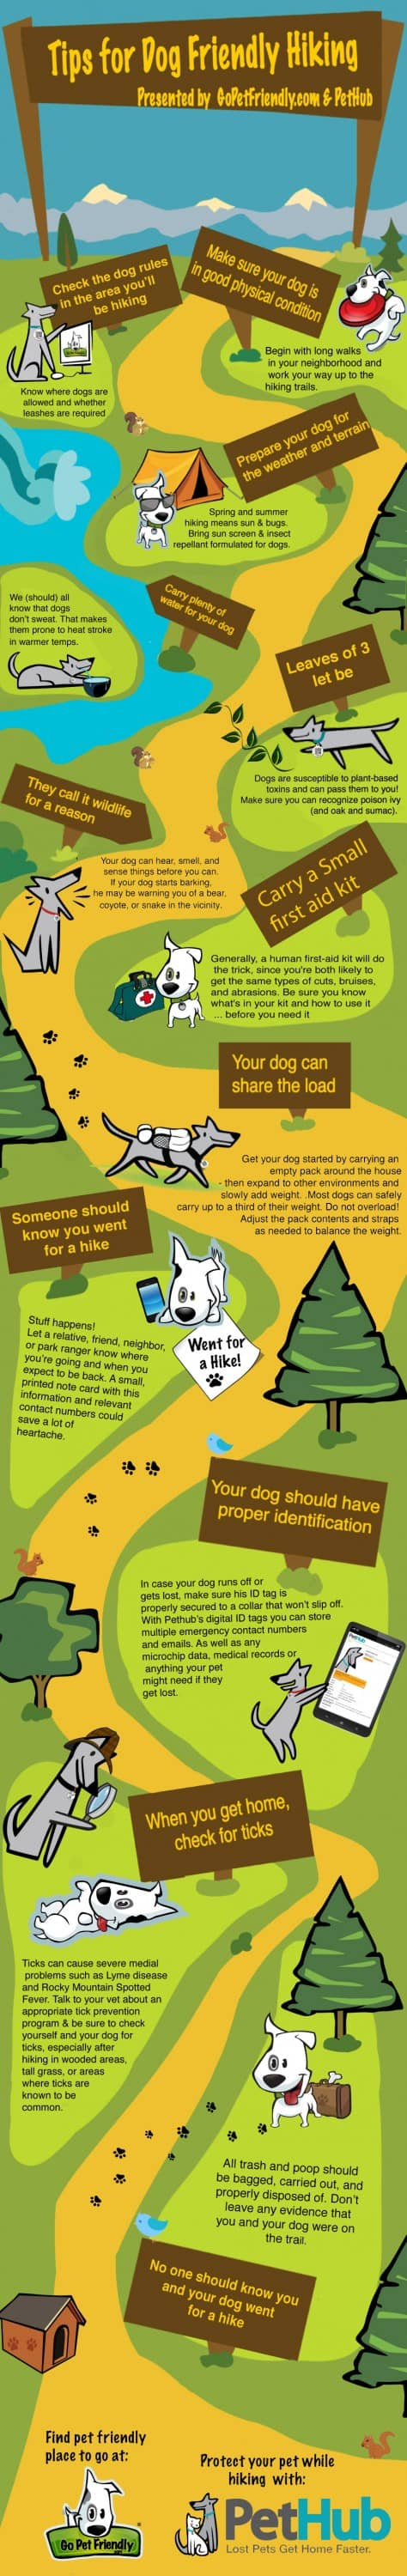 Hiking-Infographic